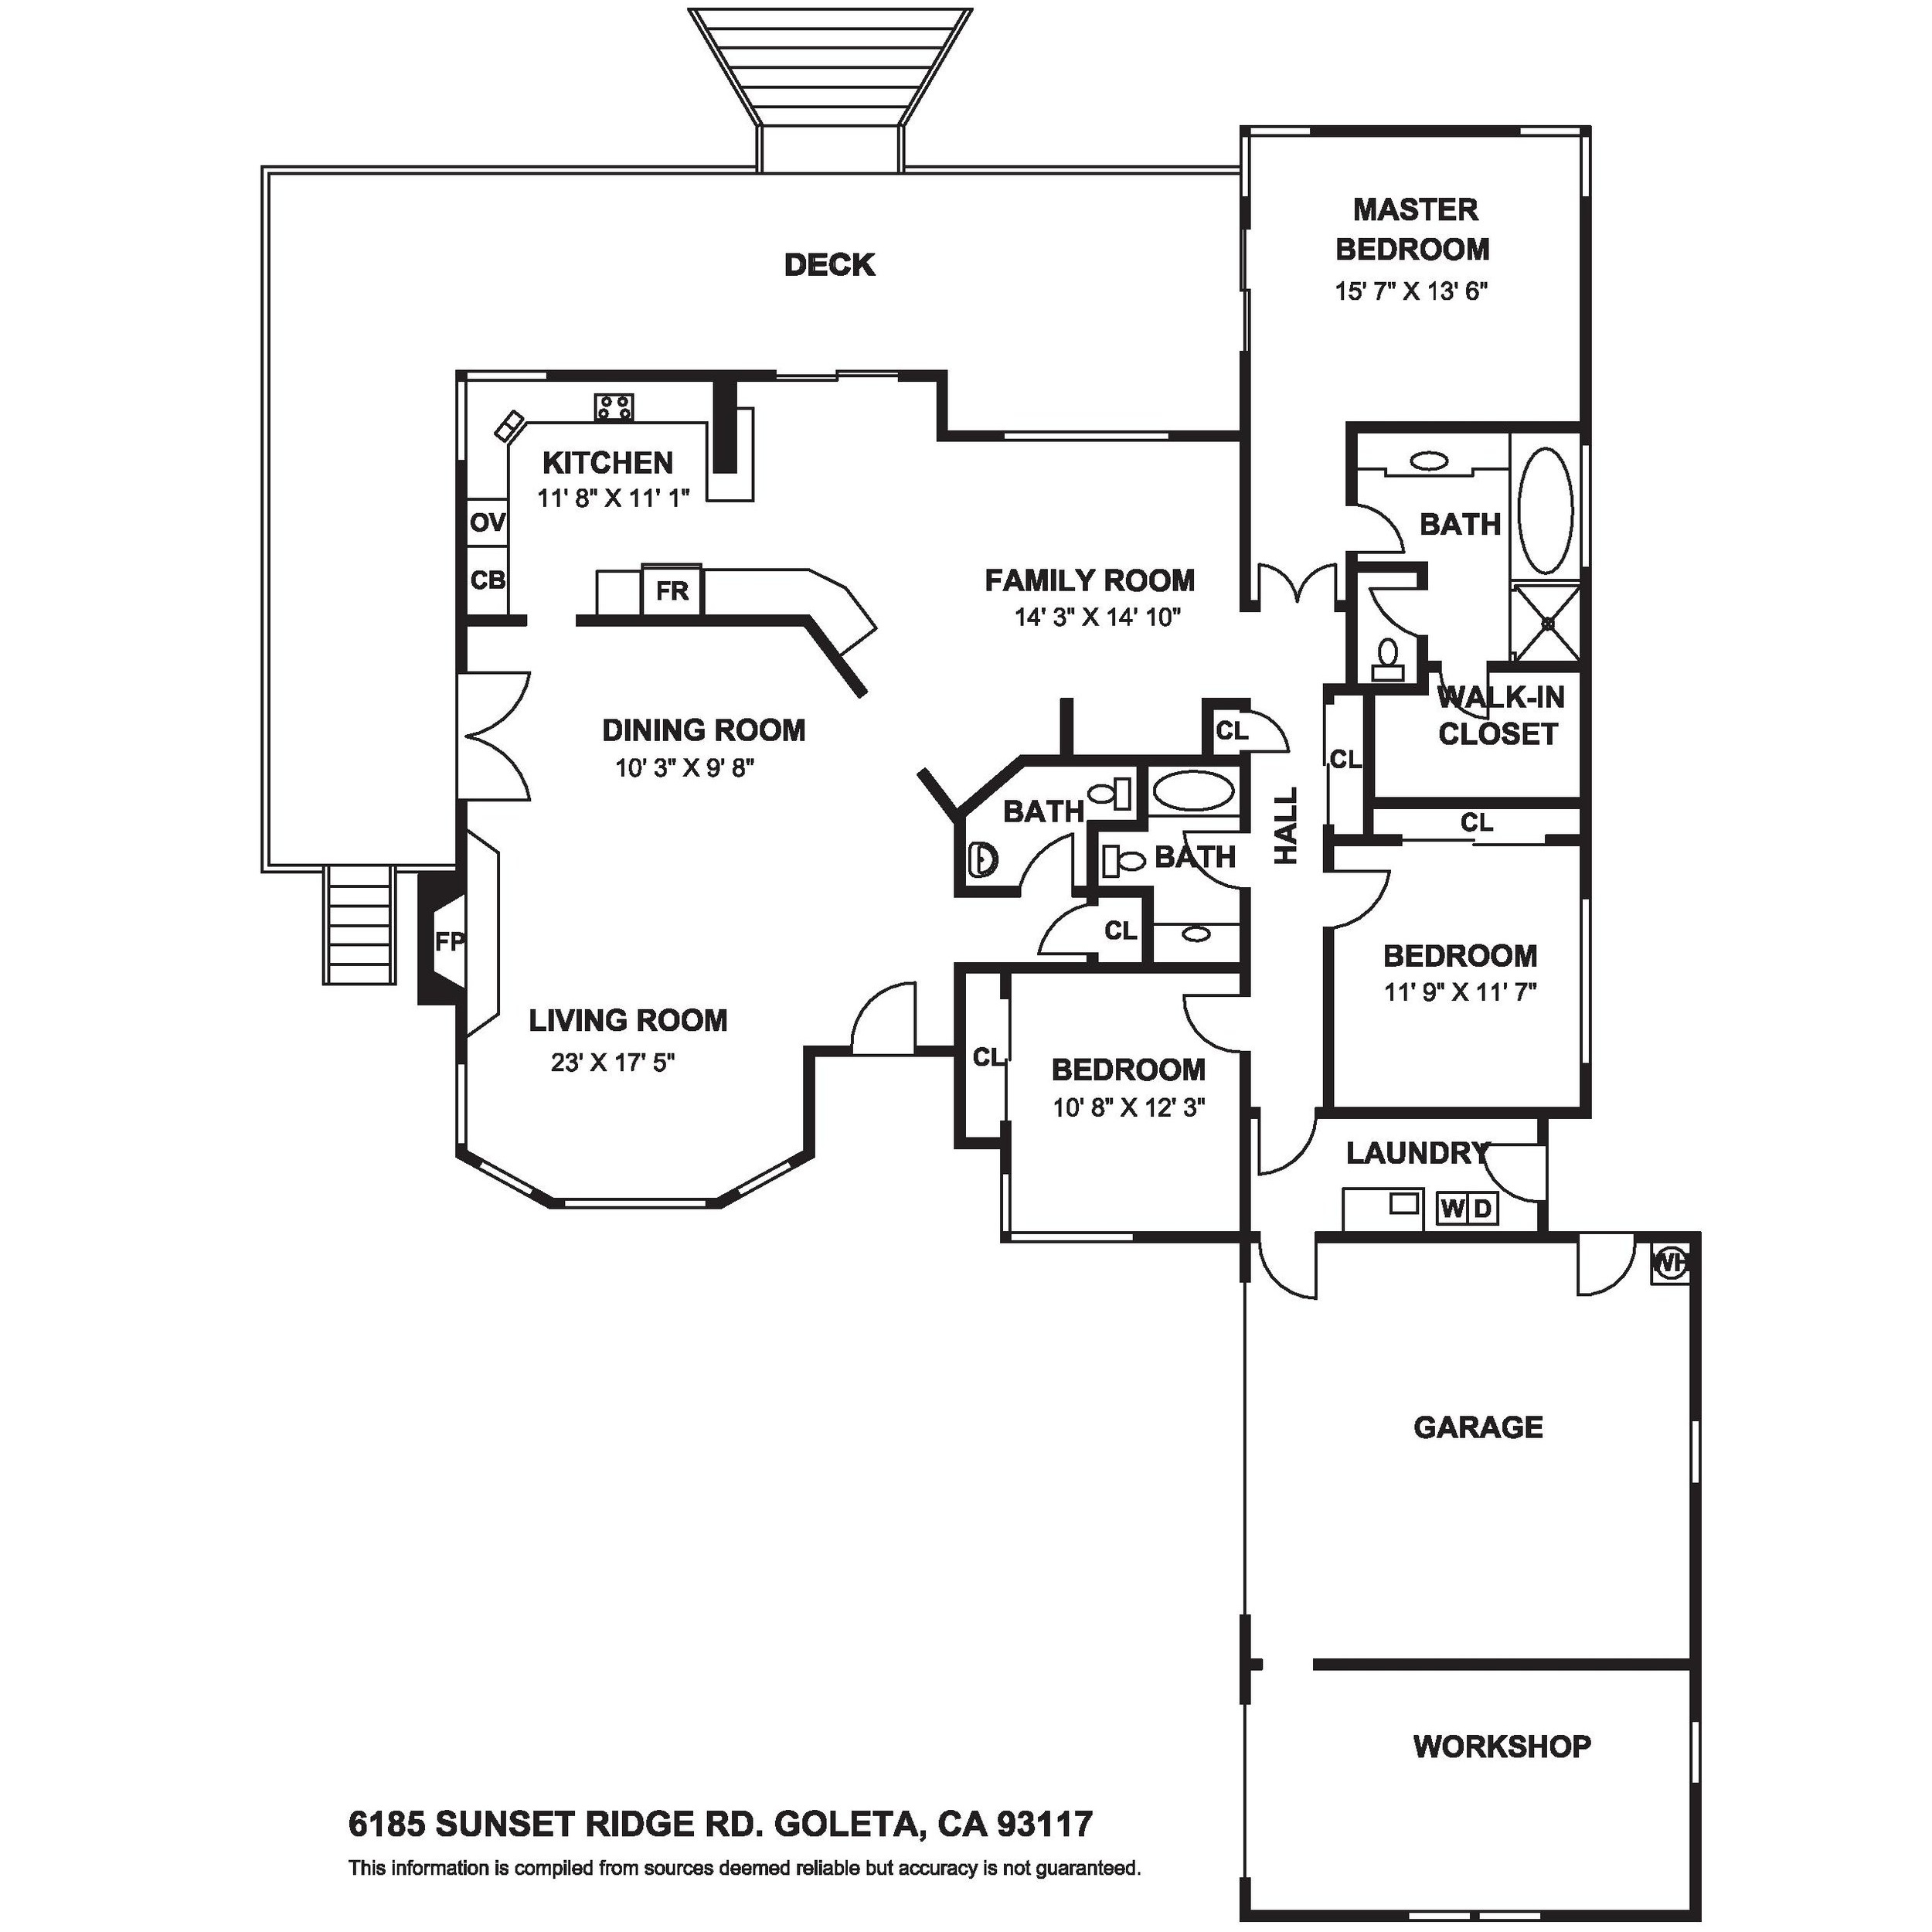 6185+Sunset+Ridge+Rd+Floor+plan-page-001.jpg